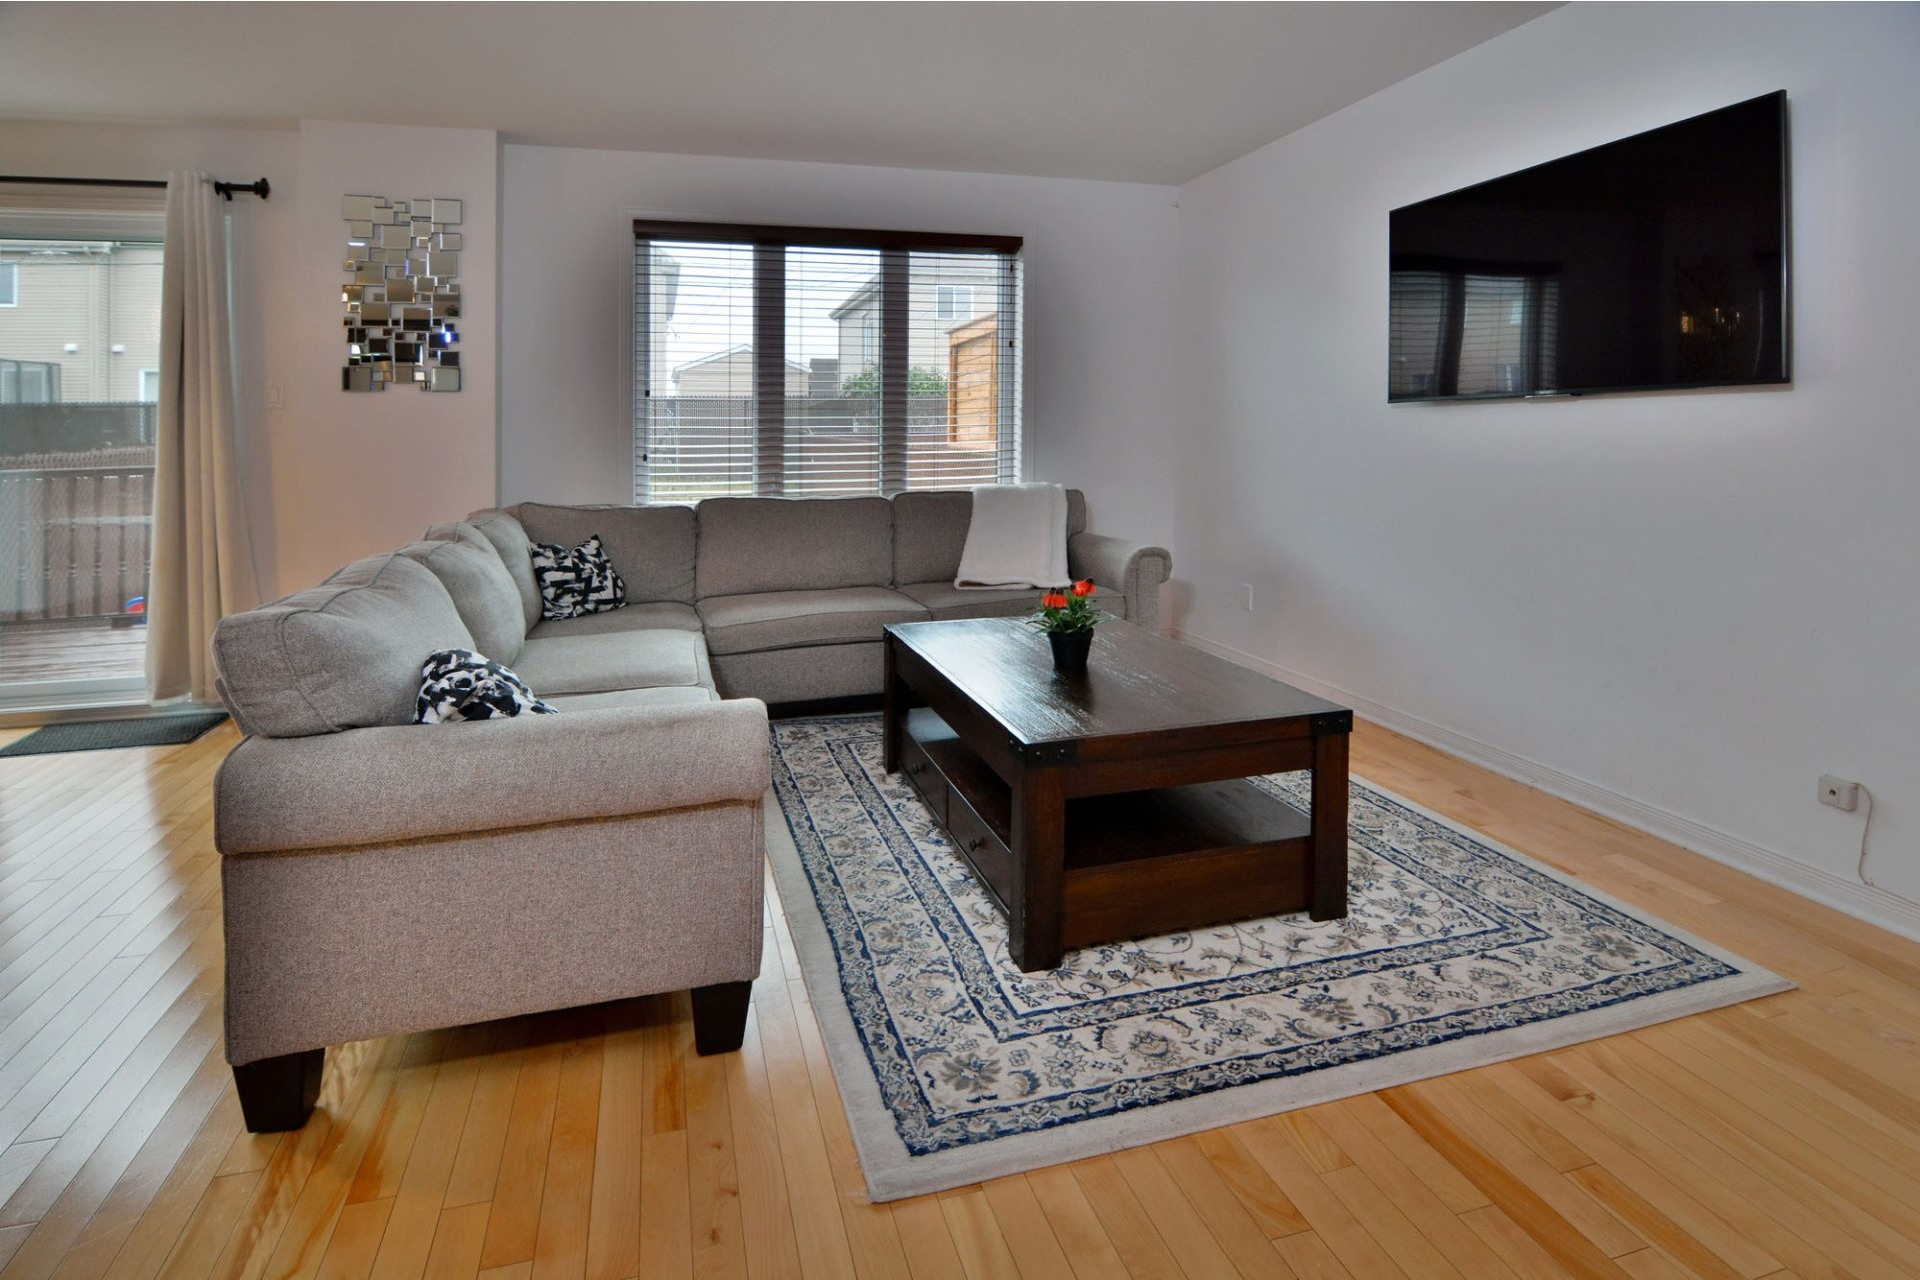 image 3 - House For sale Vaudreuil-Dorion - 12 rooms